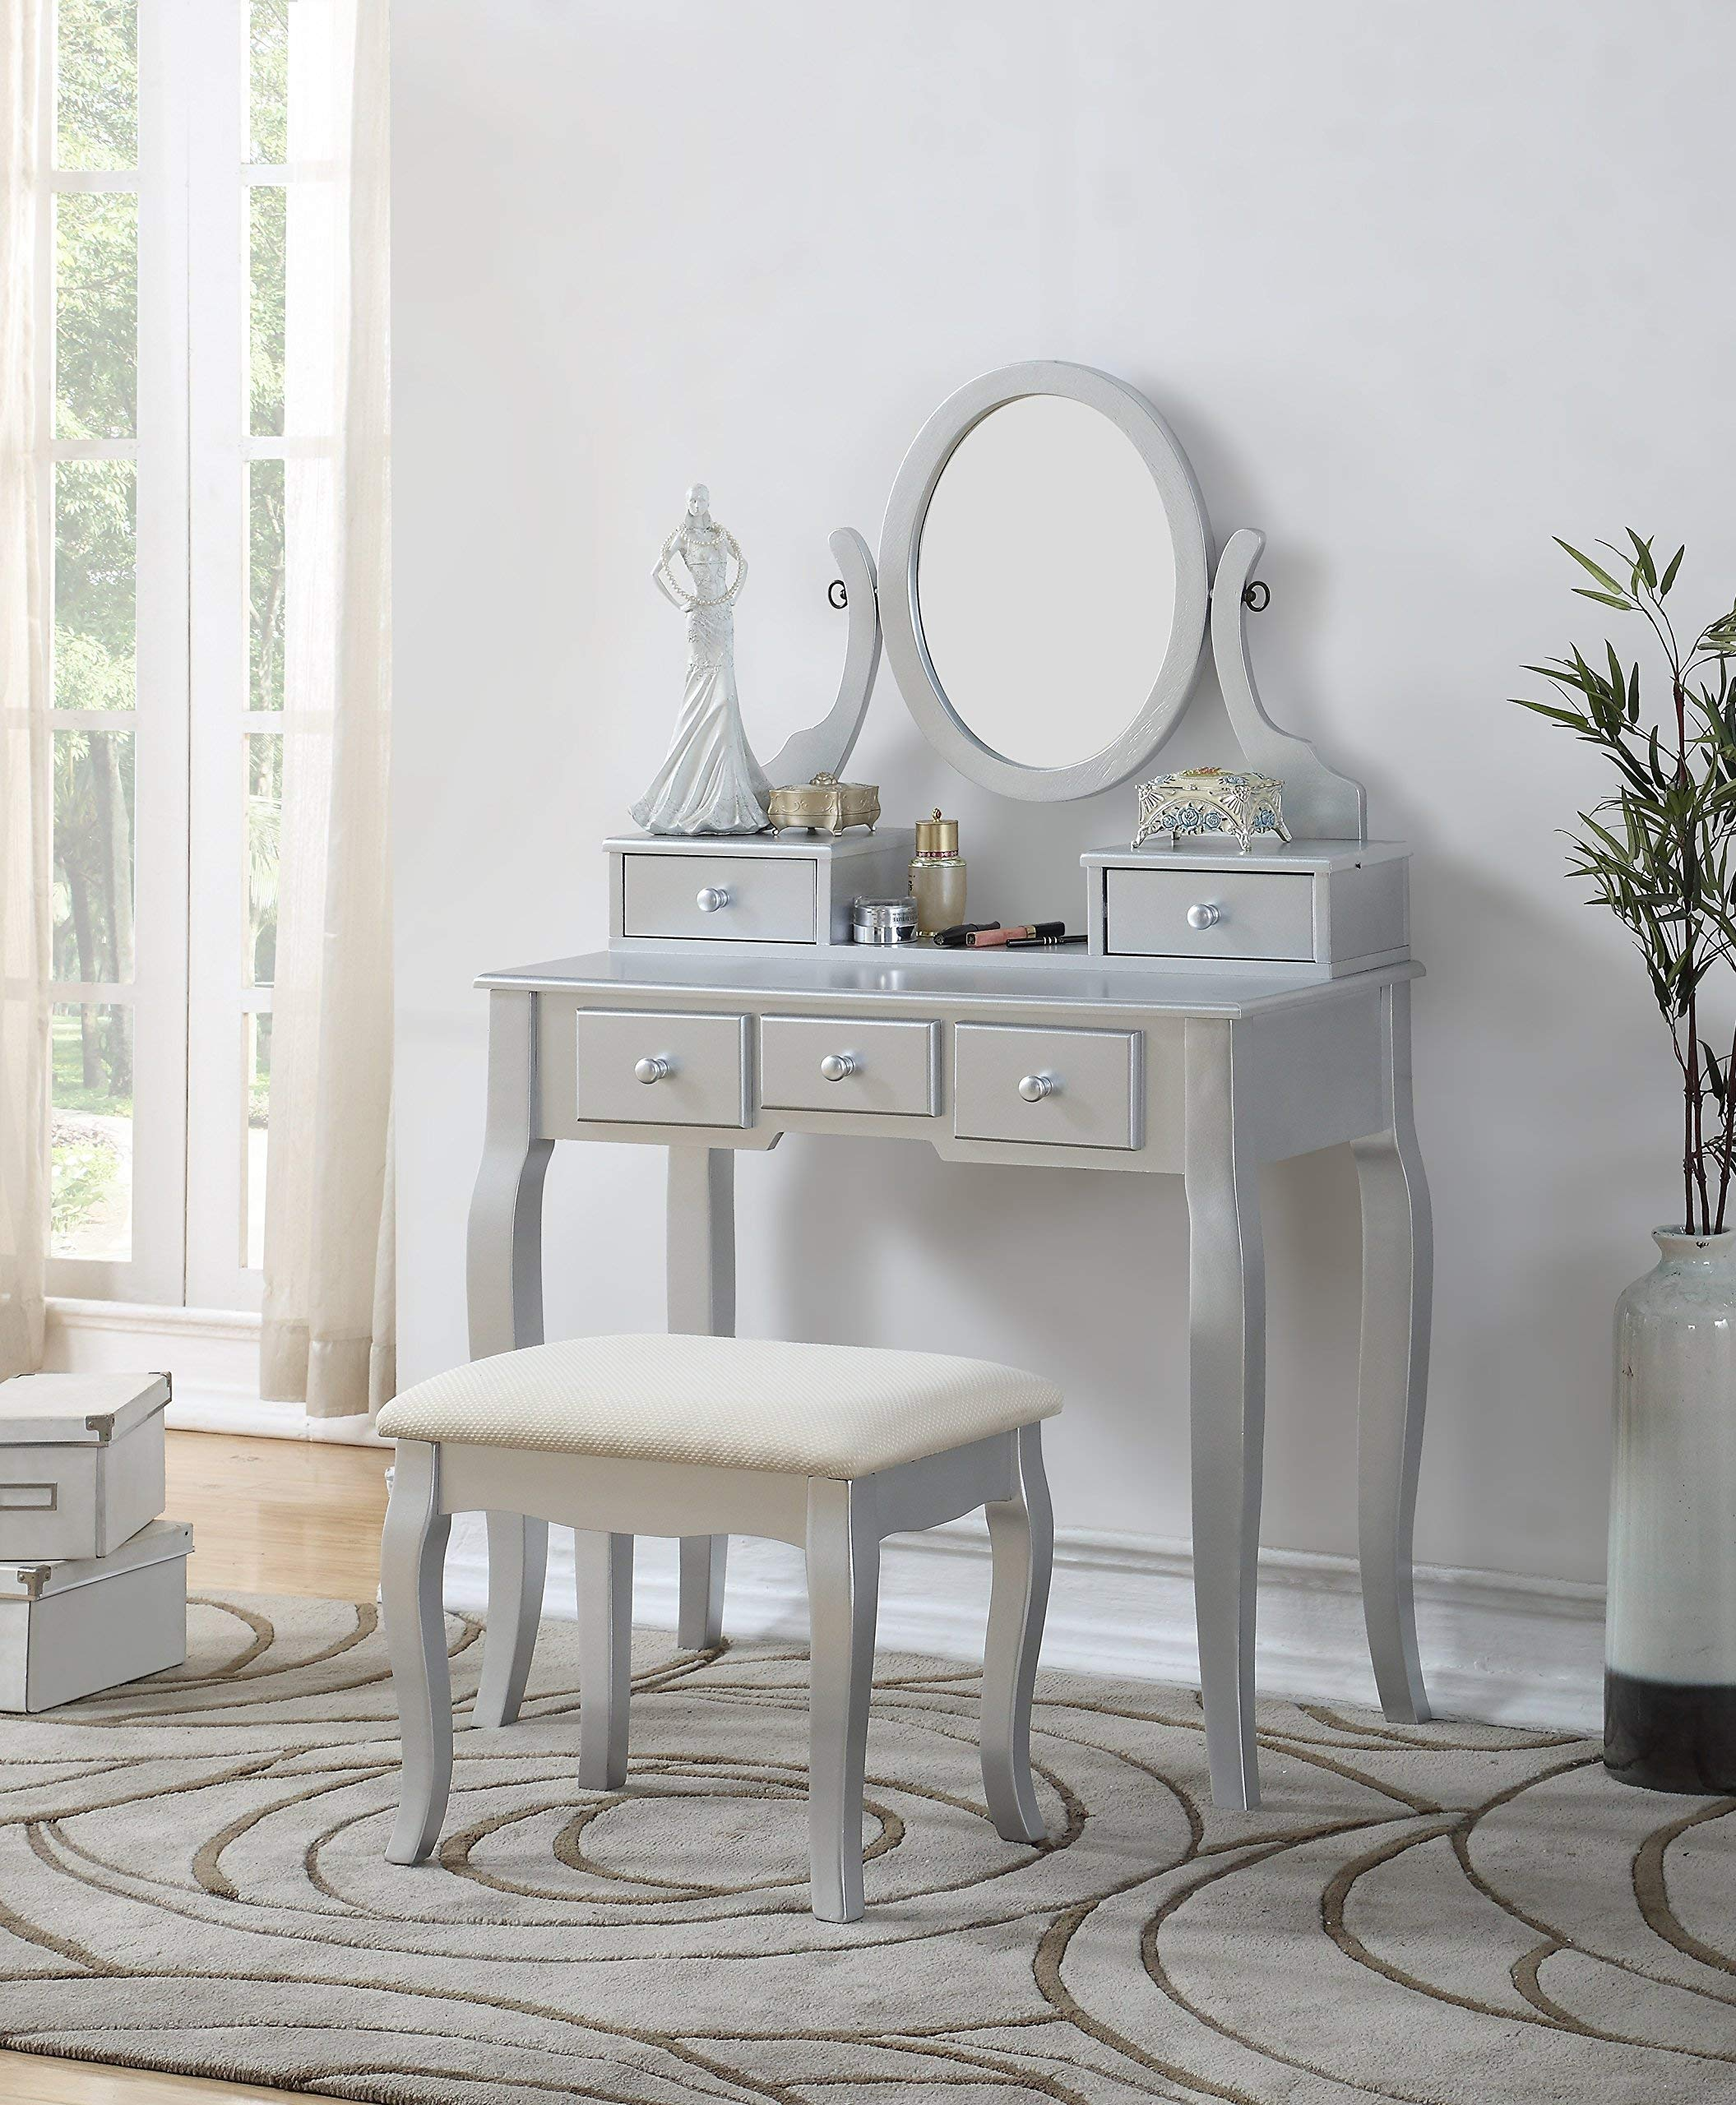 Roundhill Furniture 3418SL Ashley Silver Wood Makeup Vanity Table and Stool Set, Sliver by Roundhill Furniture